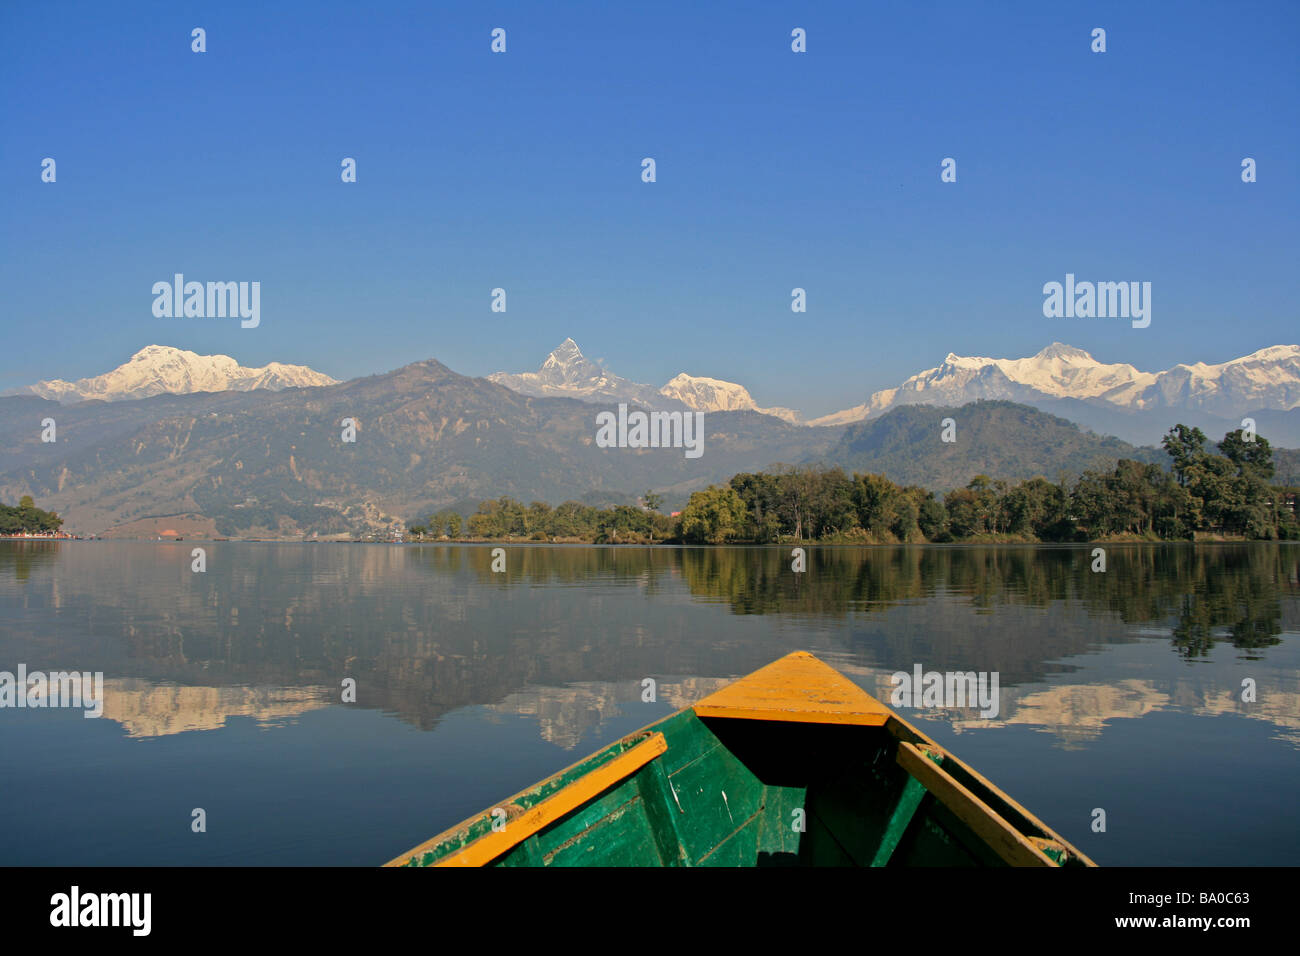 Annapurna mountains as seen from Phew Tal, Pokhara, Nepal - Stock Image